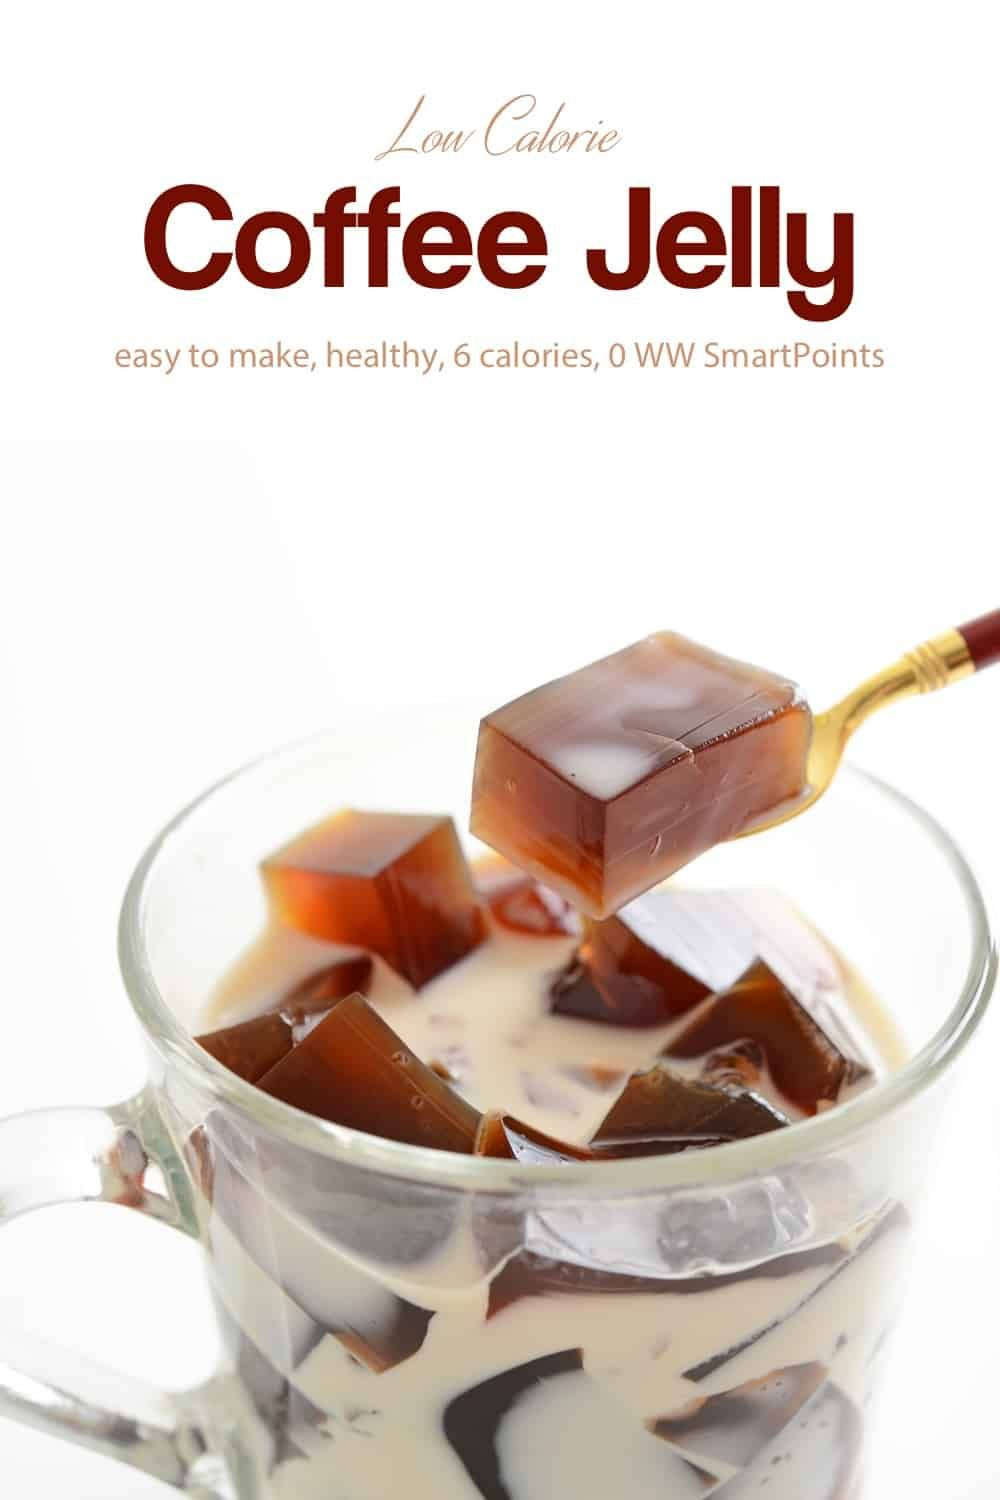 Coffee Jelly Calories